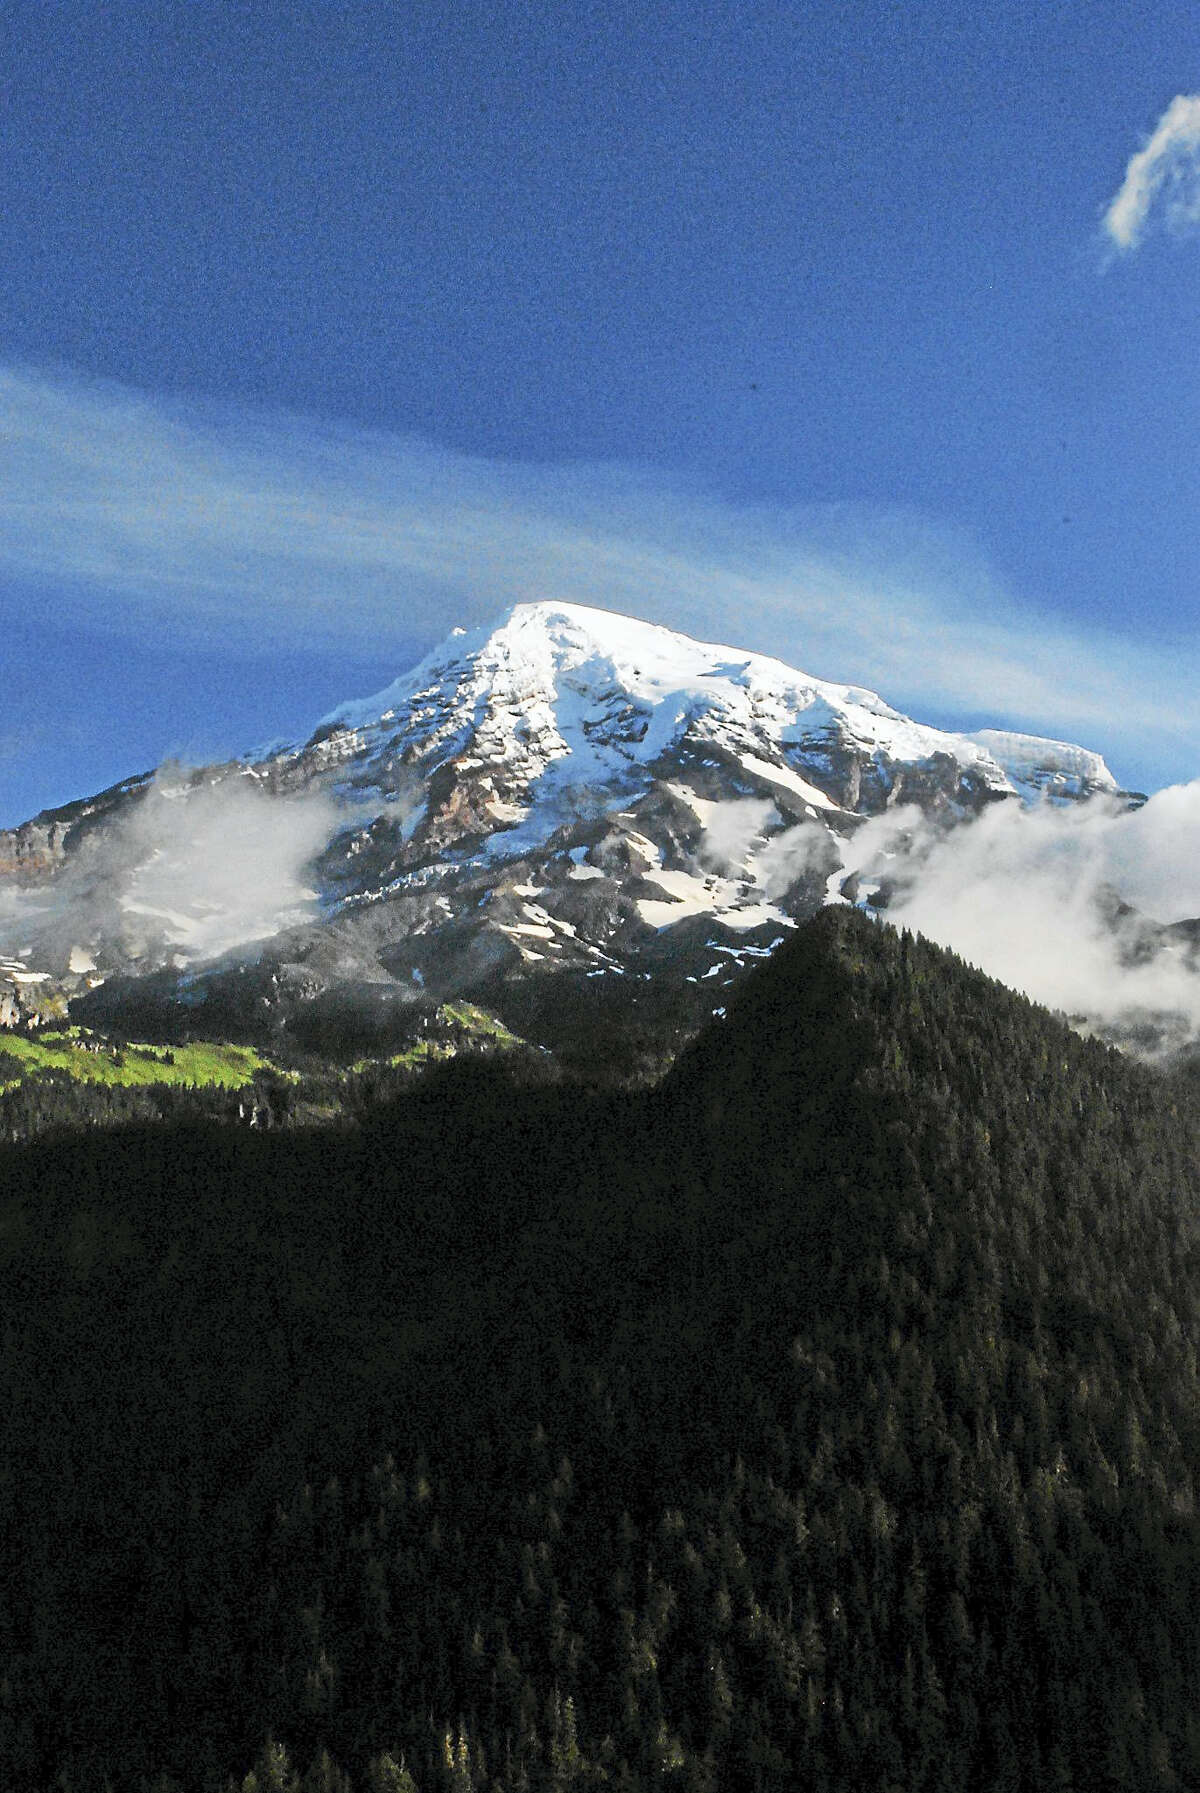 A view of Mt. Rainier just outside of Seattle, Washington. Mt. Rainier National Park is home to Mt. Rainier, an active volcano reaching 14,410 feet above sea level. (Anna Bisaro - New Haven Register)